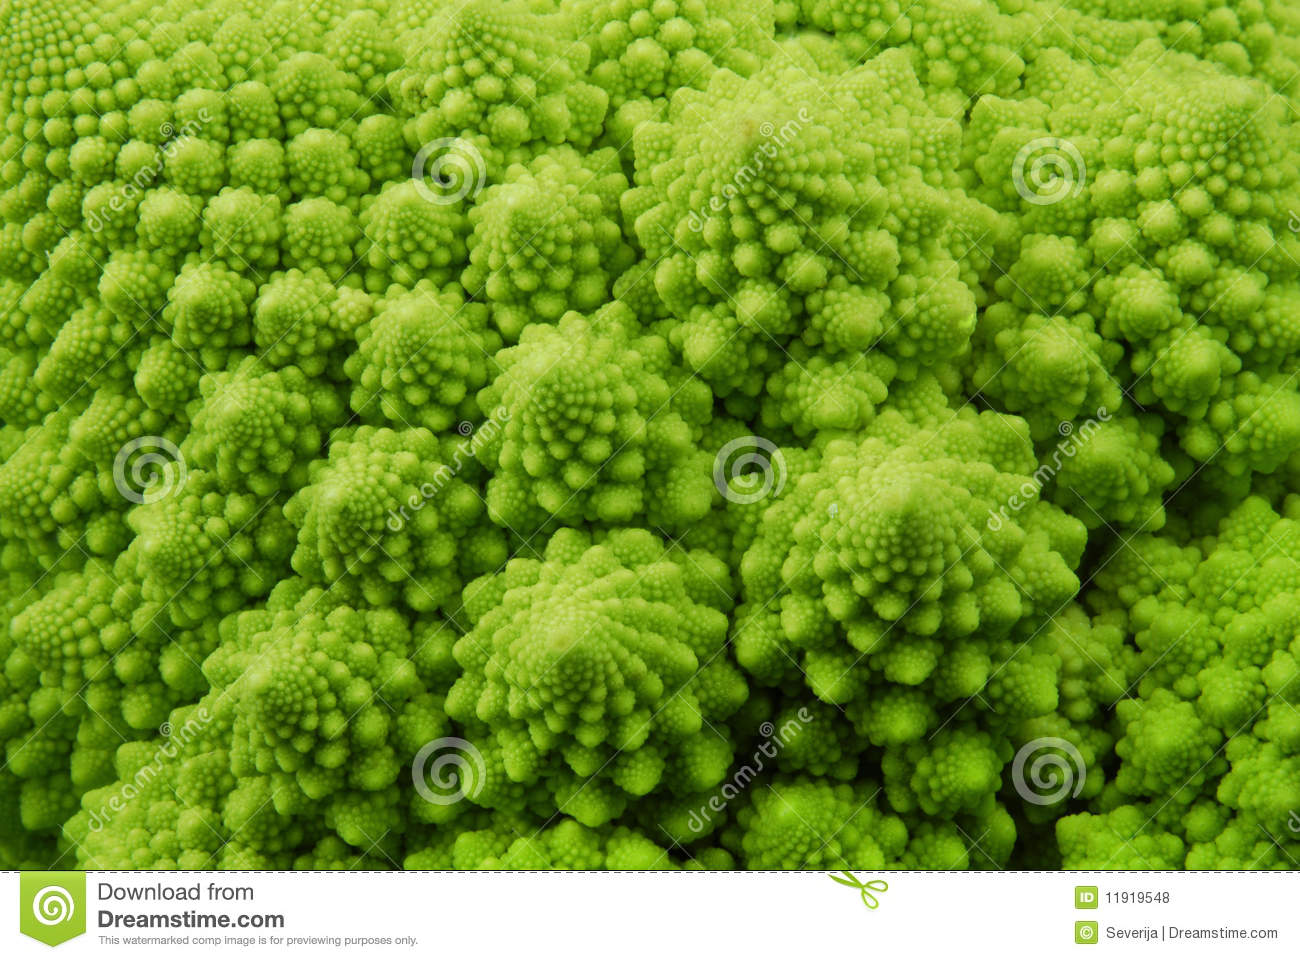 Romanesco Broccoli Royalty Free Stock Photos.